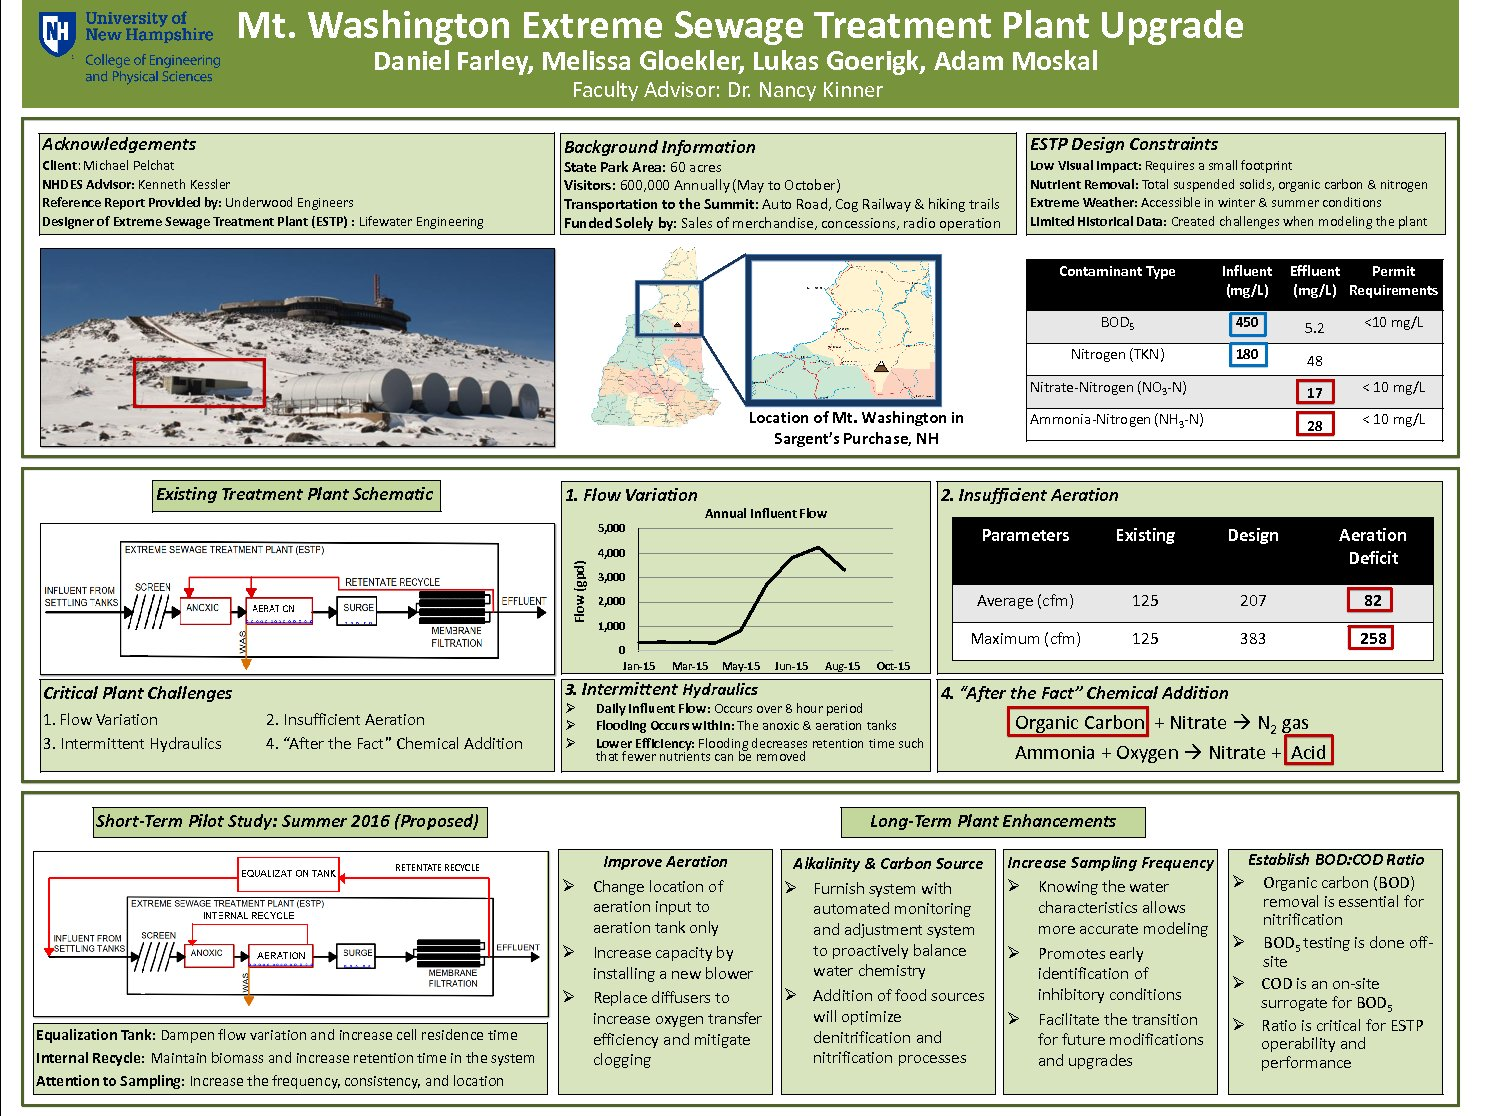 Mt. Washington Extreme Sewage Treatment Plant Upgrade by djr92